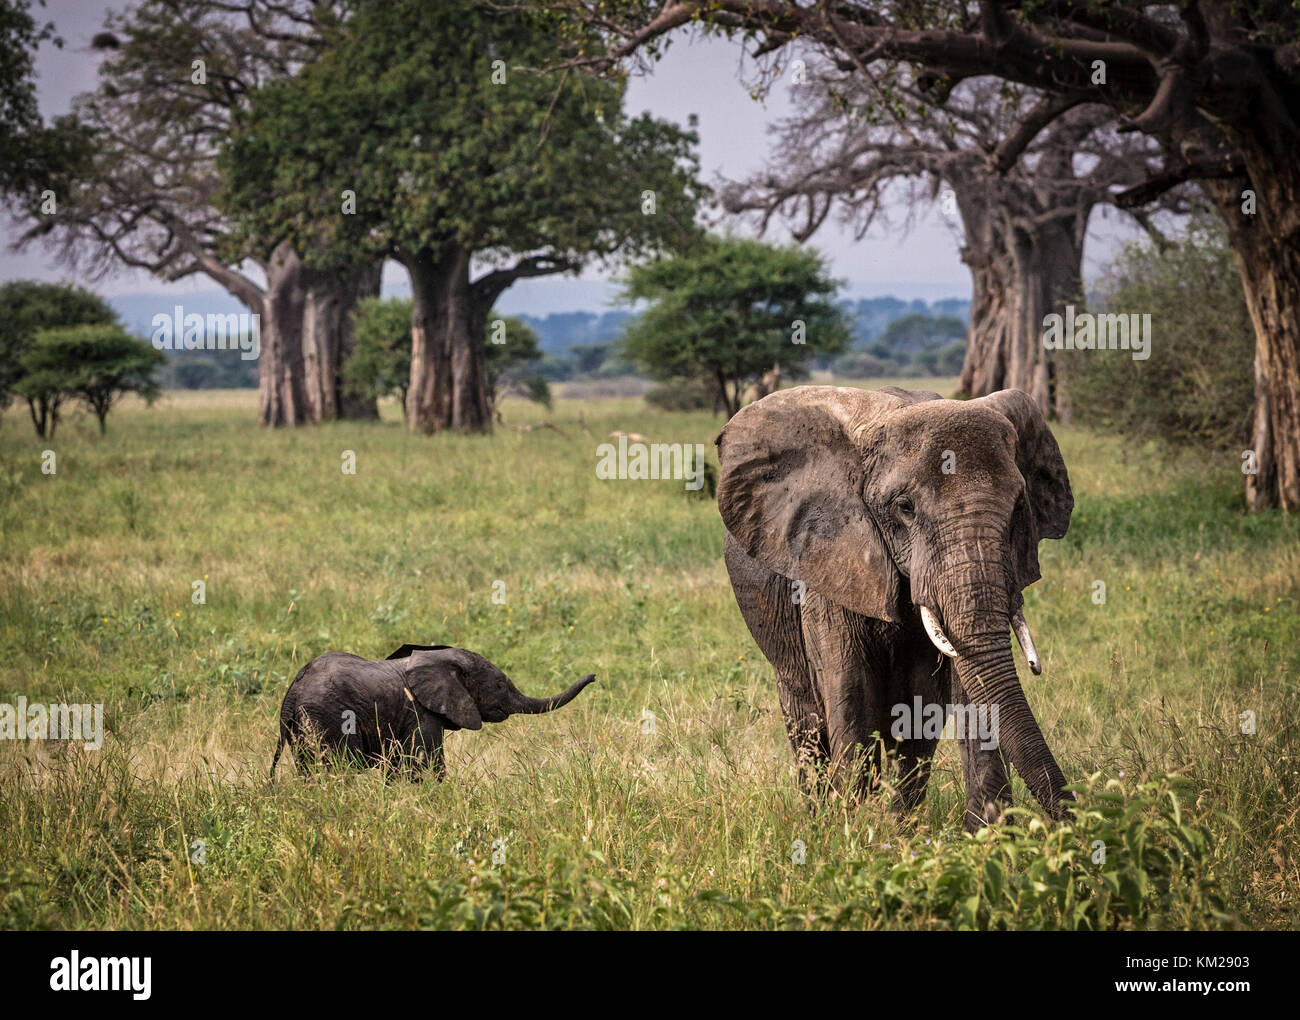 African Elephant with baby in the Serengeti, Tanzania, Africa - Stock Image